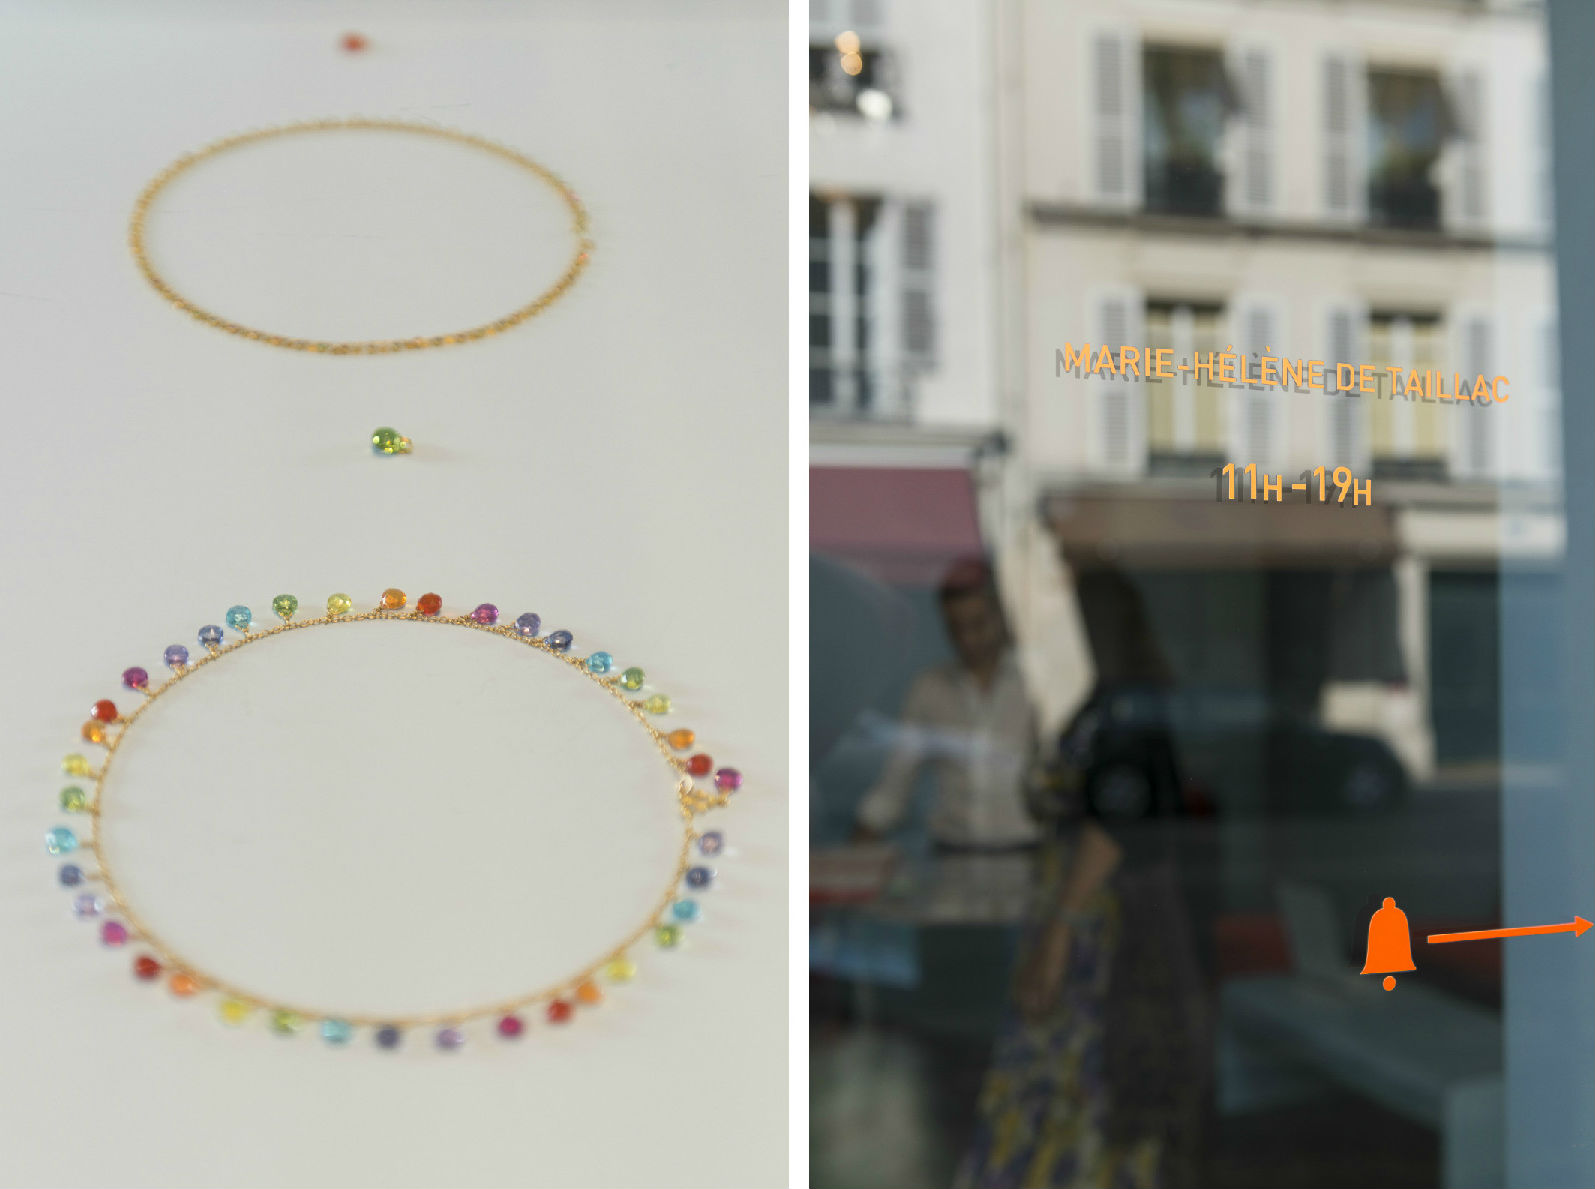 HiP Paris blog. Discovering Saint Sulpice. Jewelry at Marie-Hélène de Taillac on rue de Tournon.